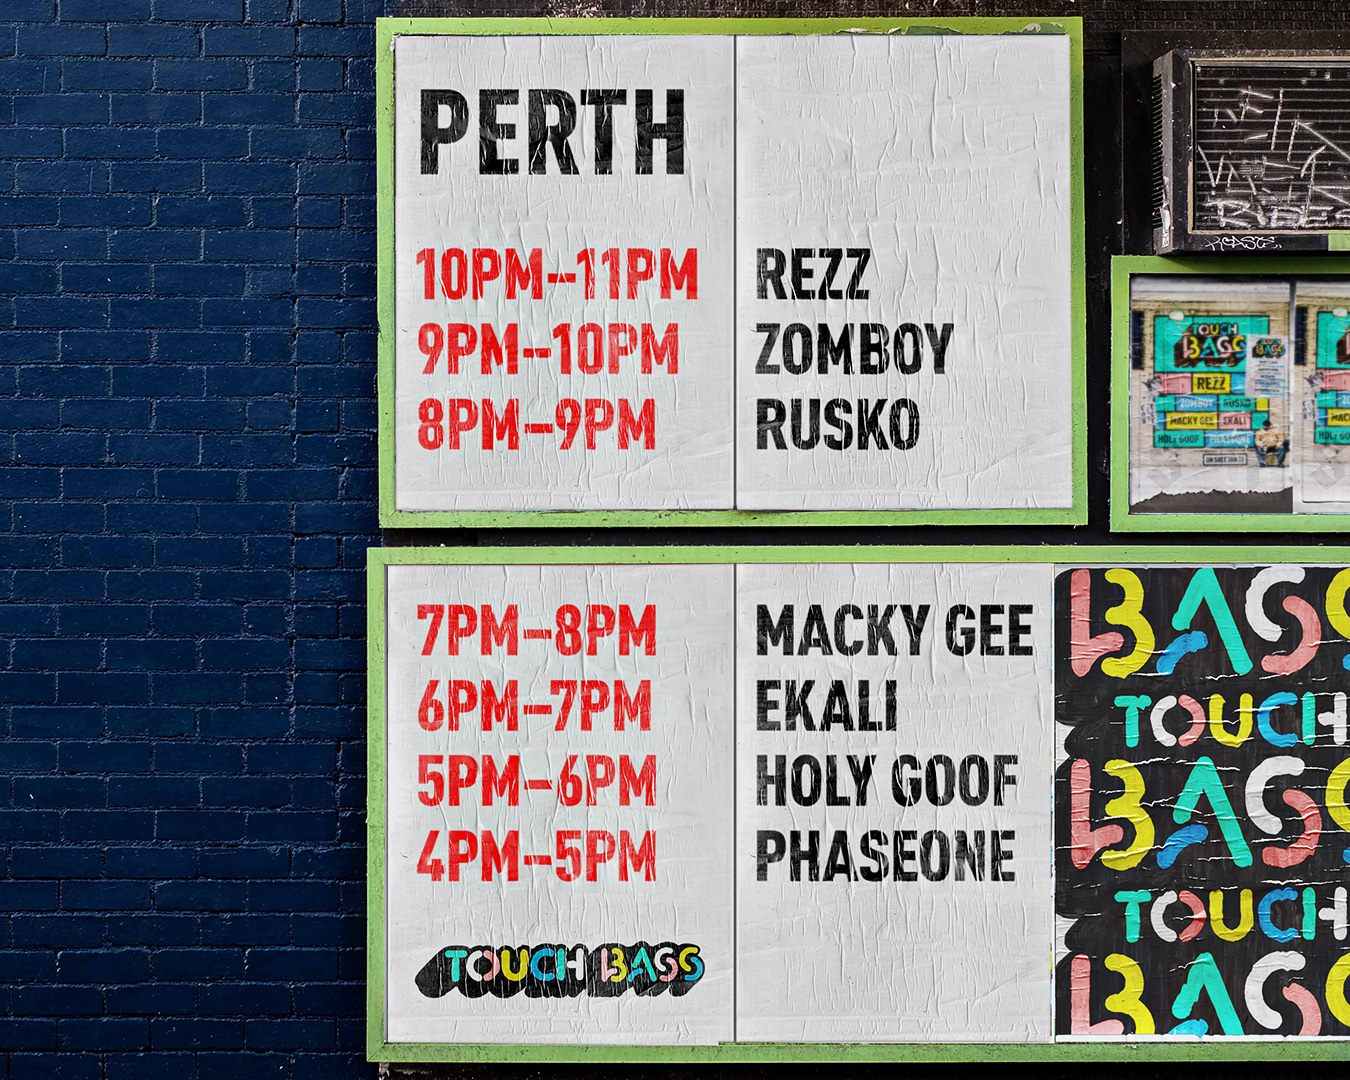 touch-bass-2019-set-times-perth